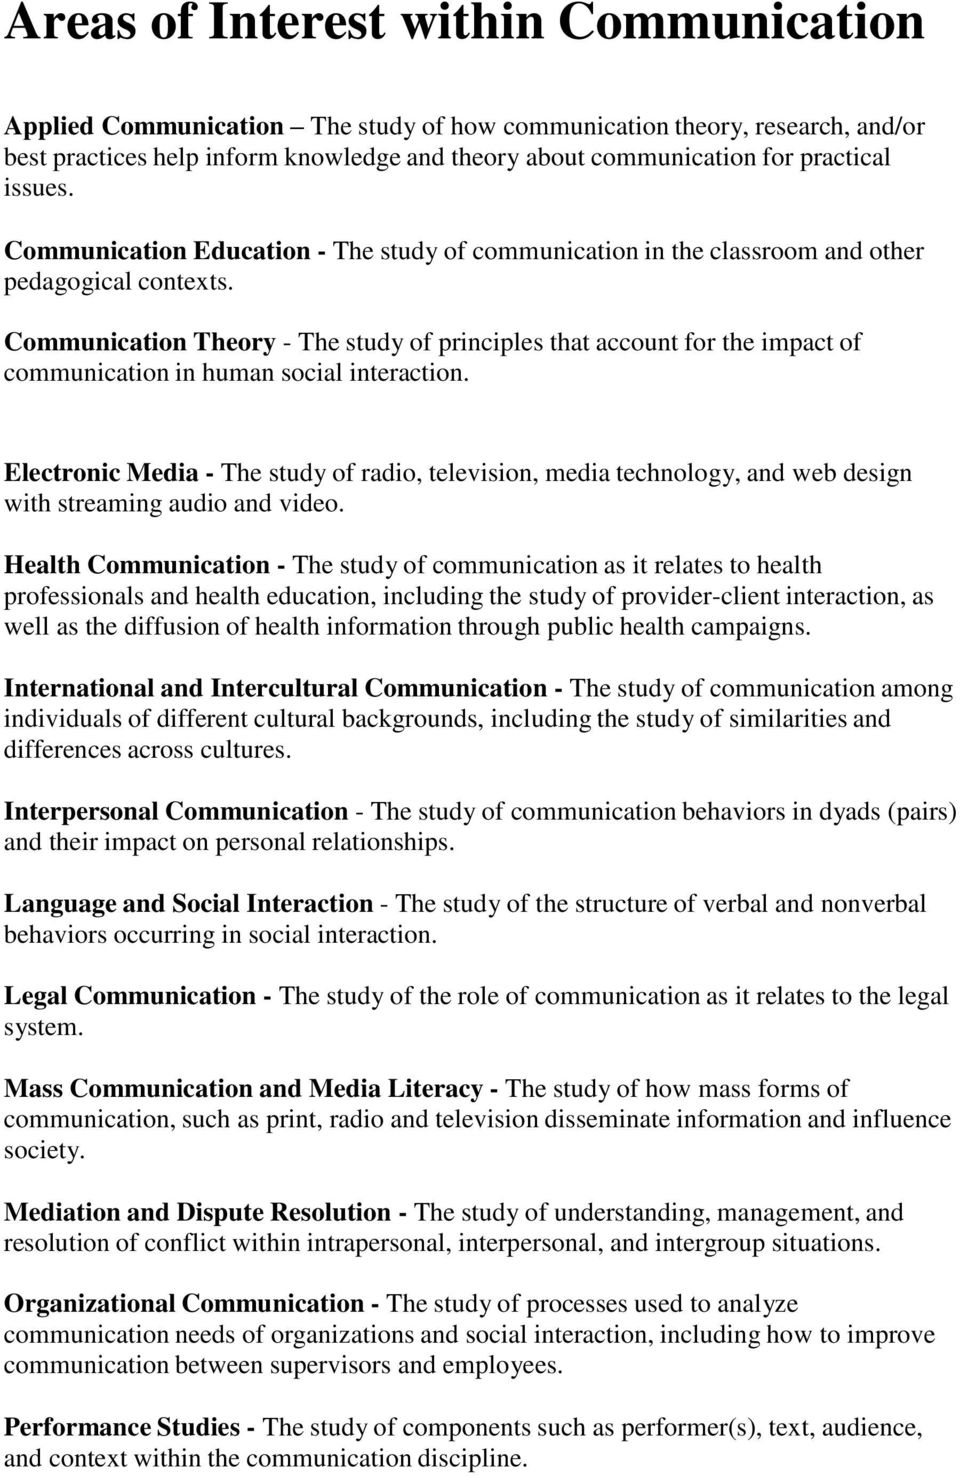 Communication Theory - The study of principles that account for the impact of communication in human social interaction.